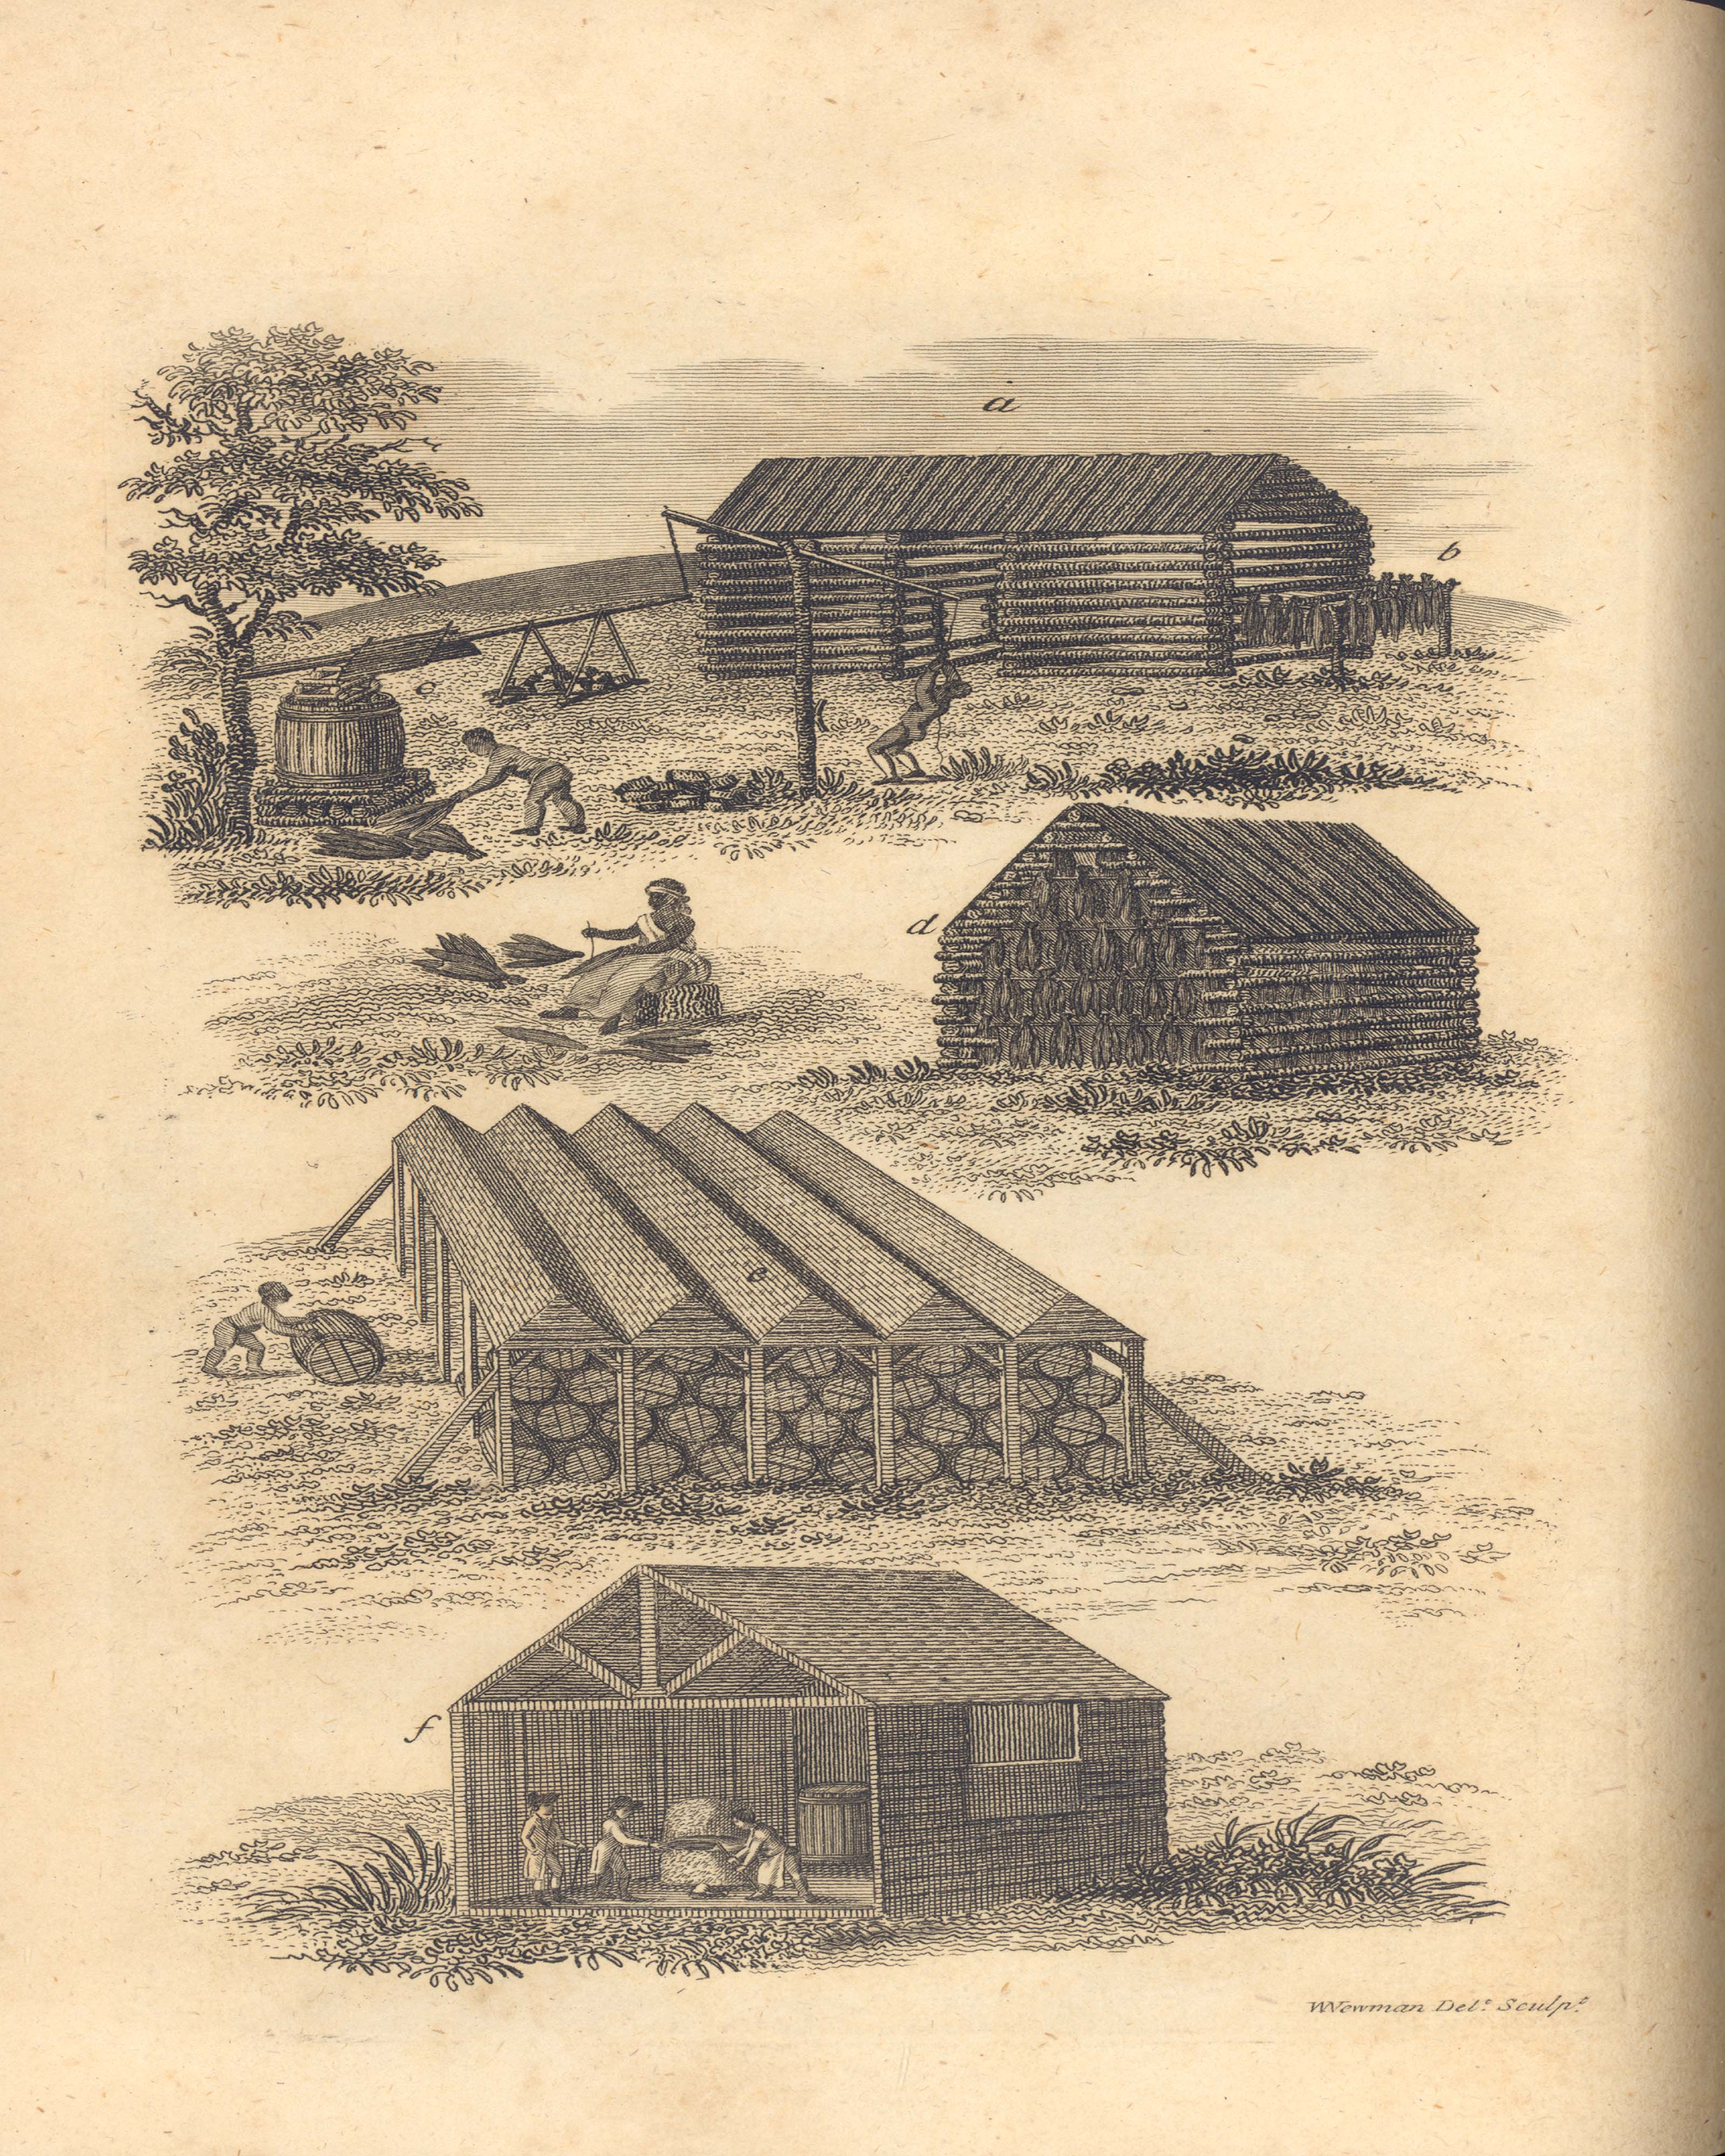 Tobacco houses from the book Tobacco by William Tatham (call number: Rare Books SB 374 .T21)